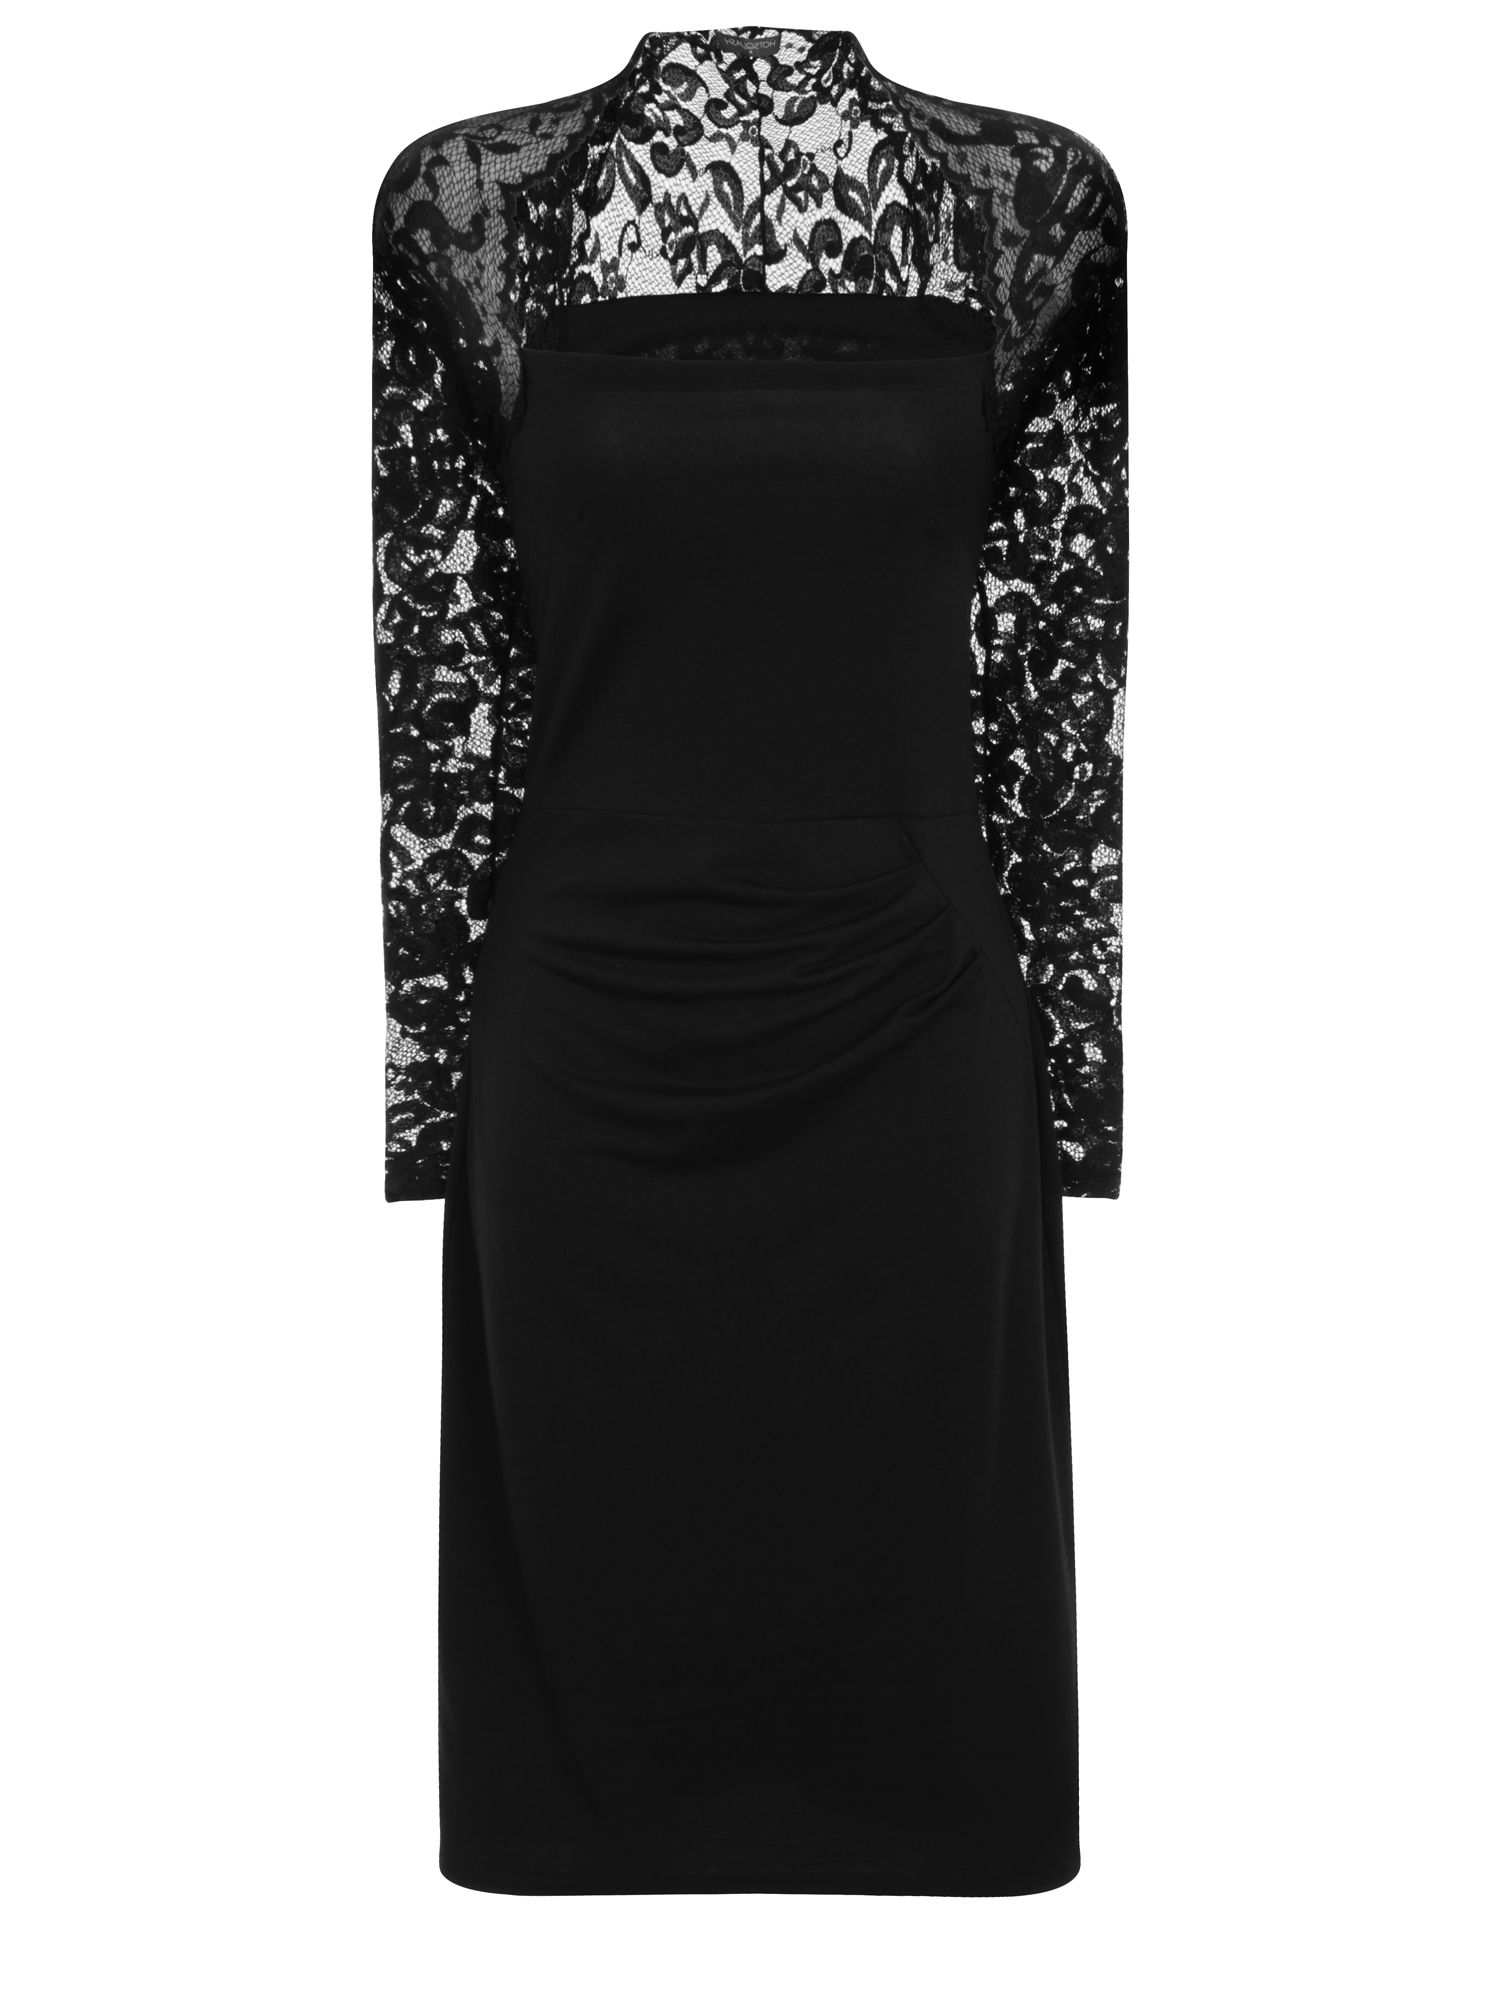 HotSquash Lace Sleeved Dress In Clever Fabric, Black